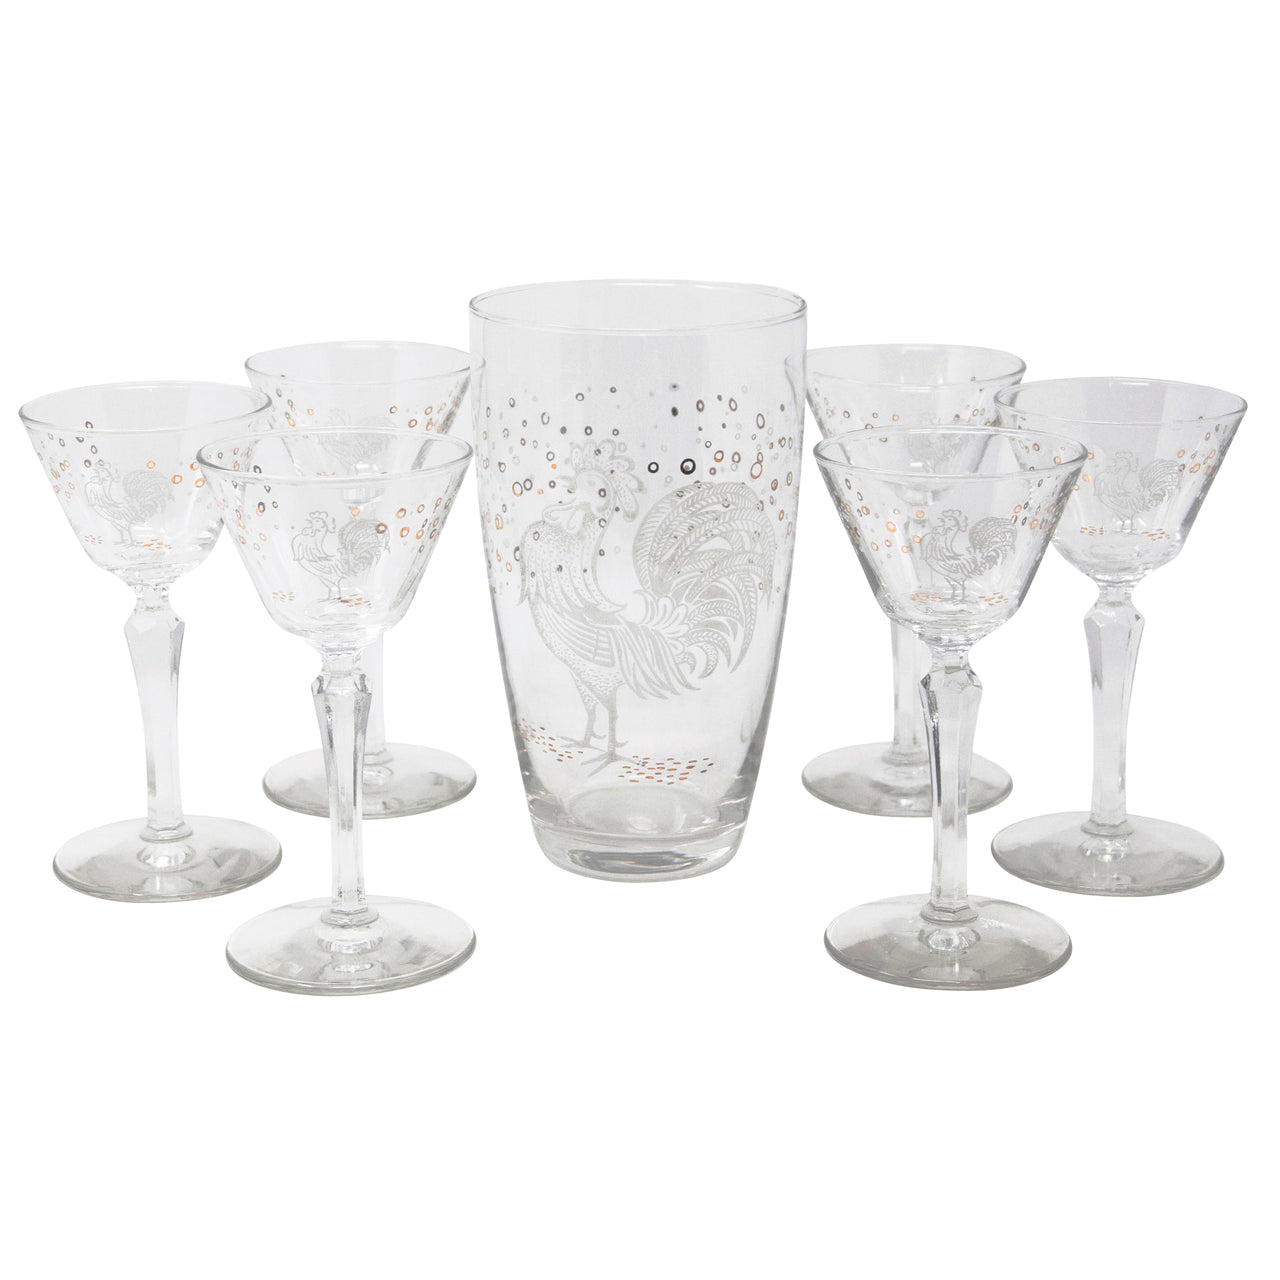 Vintage Mid Century White Rooster Mixing Glass Cocktail Set | The Hour